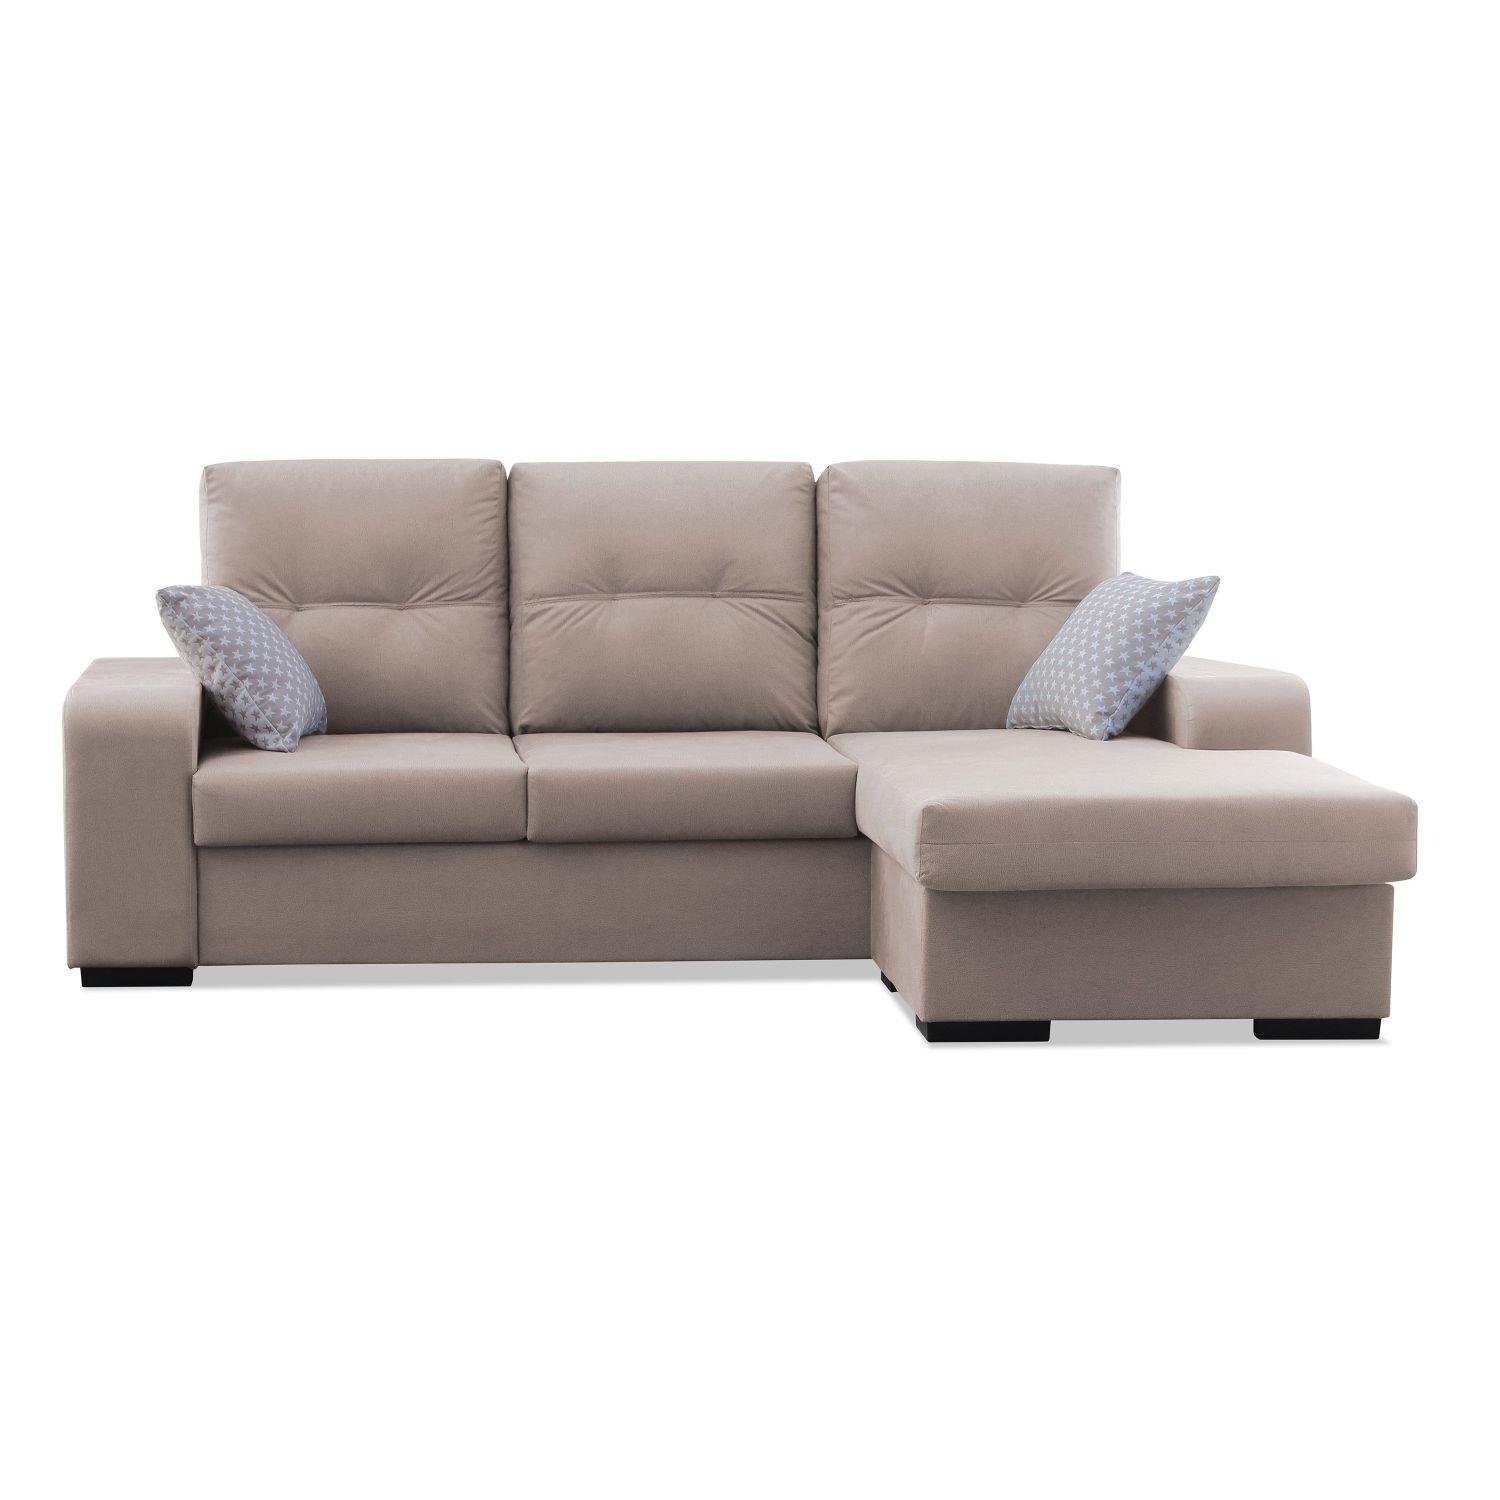 Muebles Baratos Sofa con Chaise Longue 3 plazas color beige ...